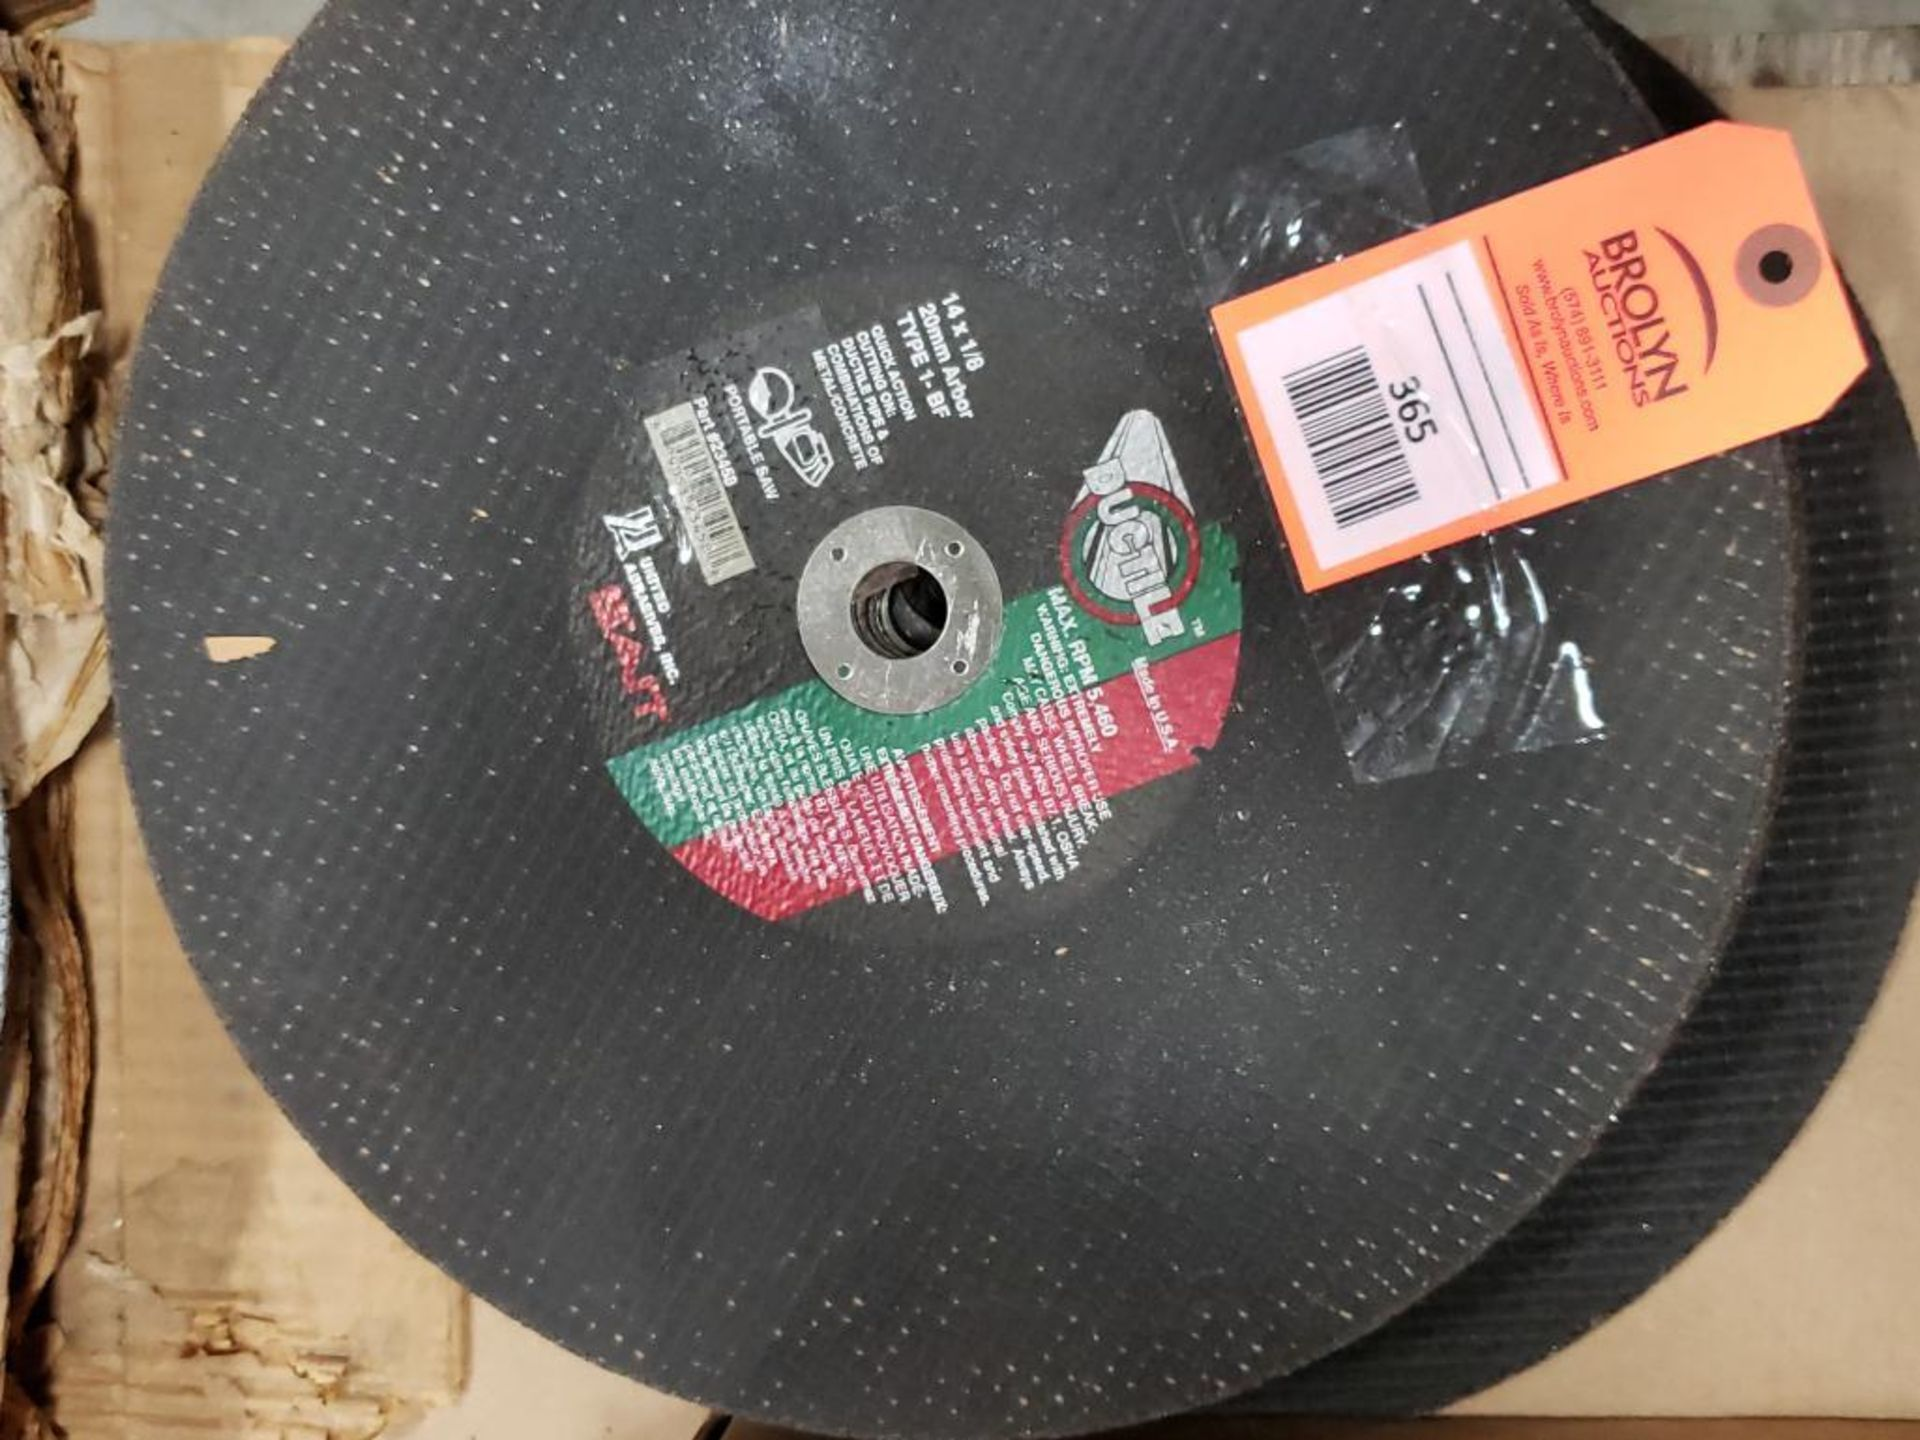 Ductile 14 x 1/8 20mm Arbor type 1-BF Quick Action cutting wheels. 23458.